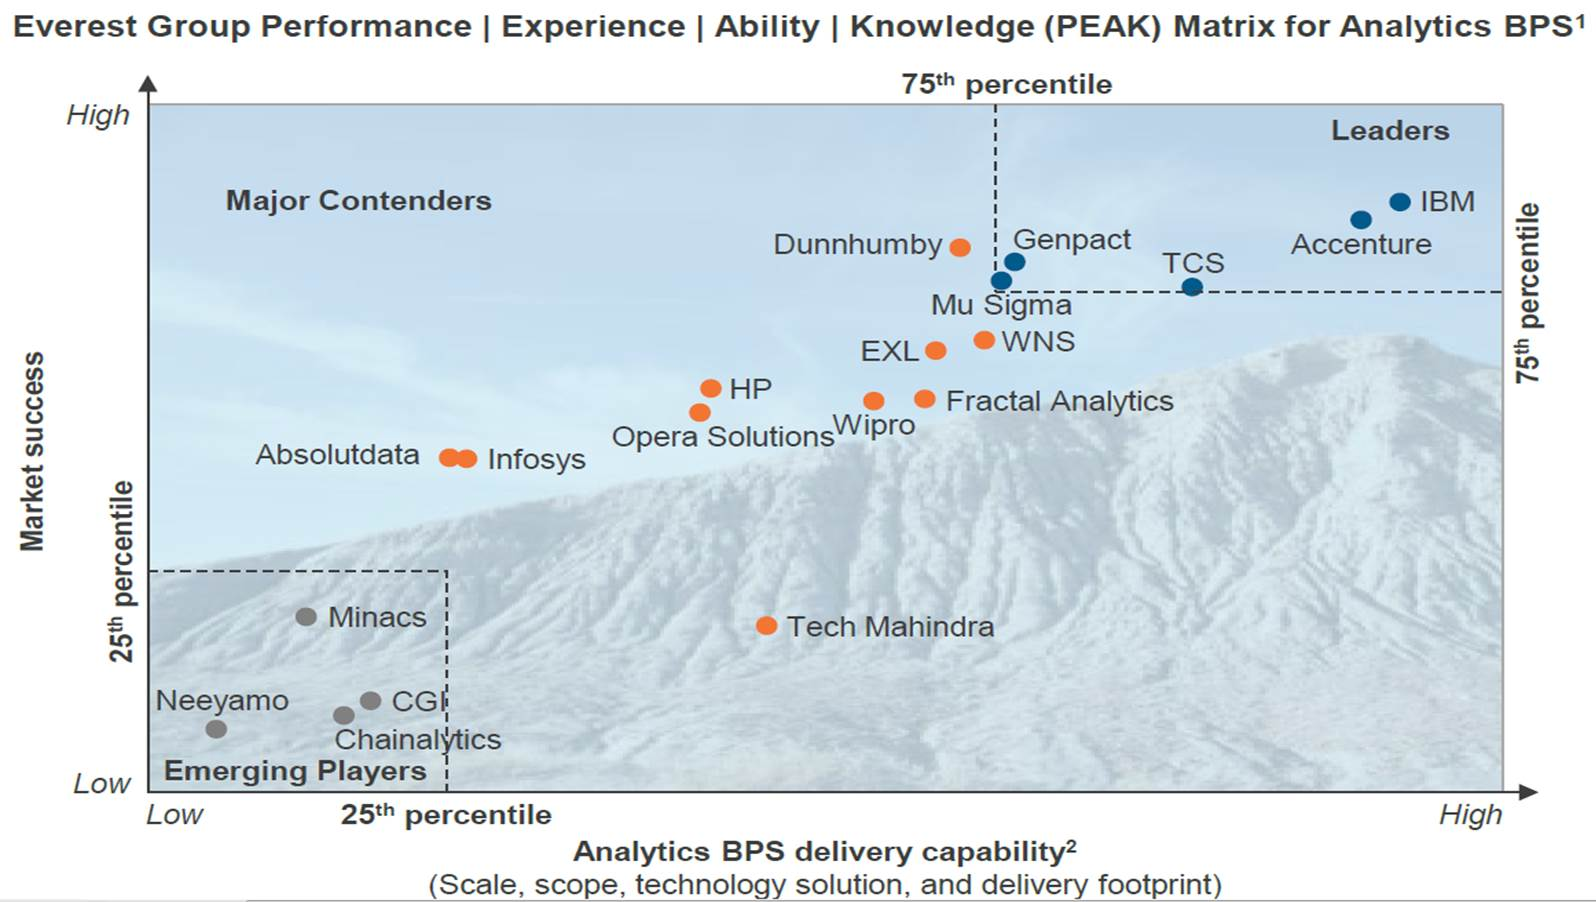 Everest Analytics BPS